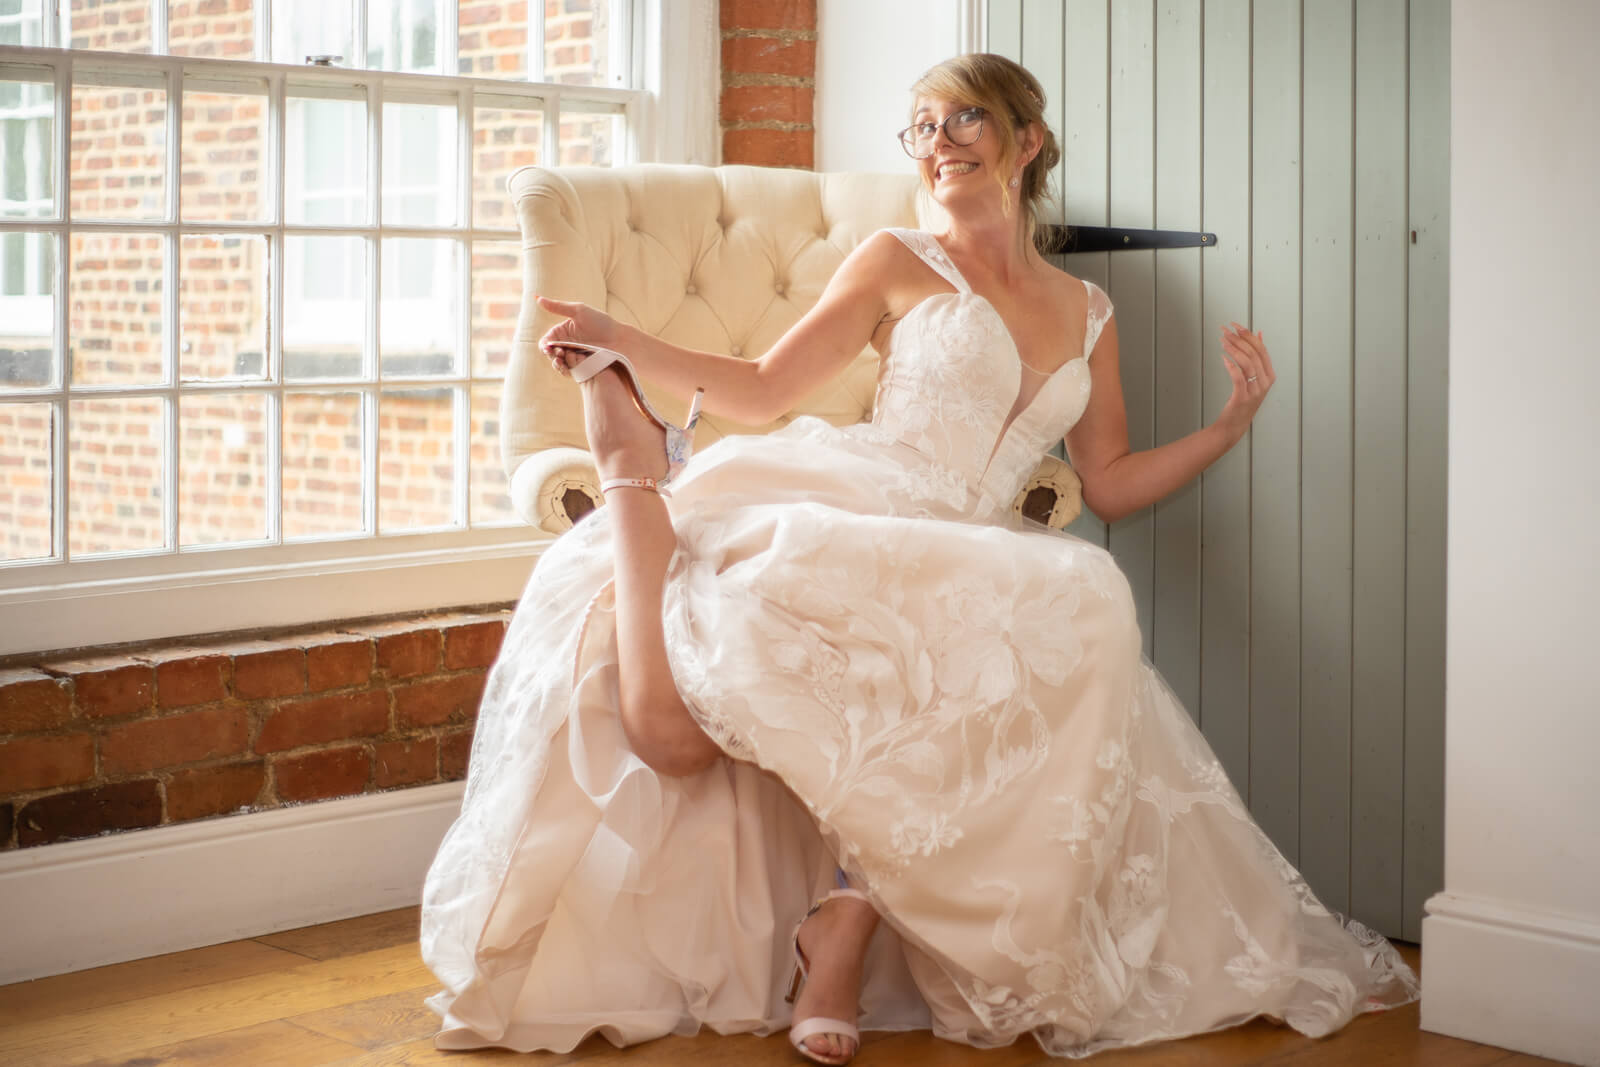 Bride strikes a silly pose after putting her shoes on